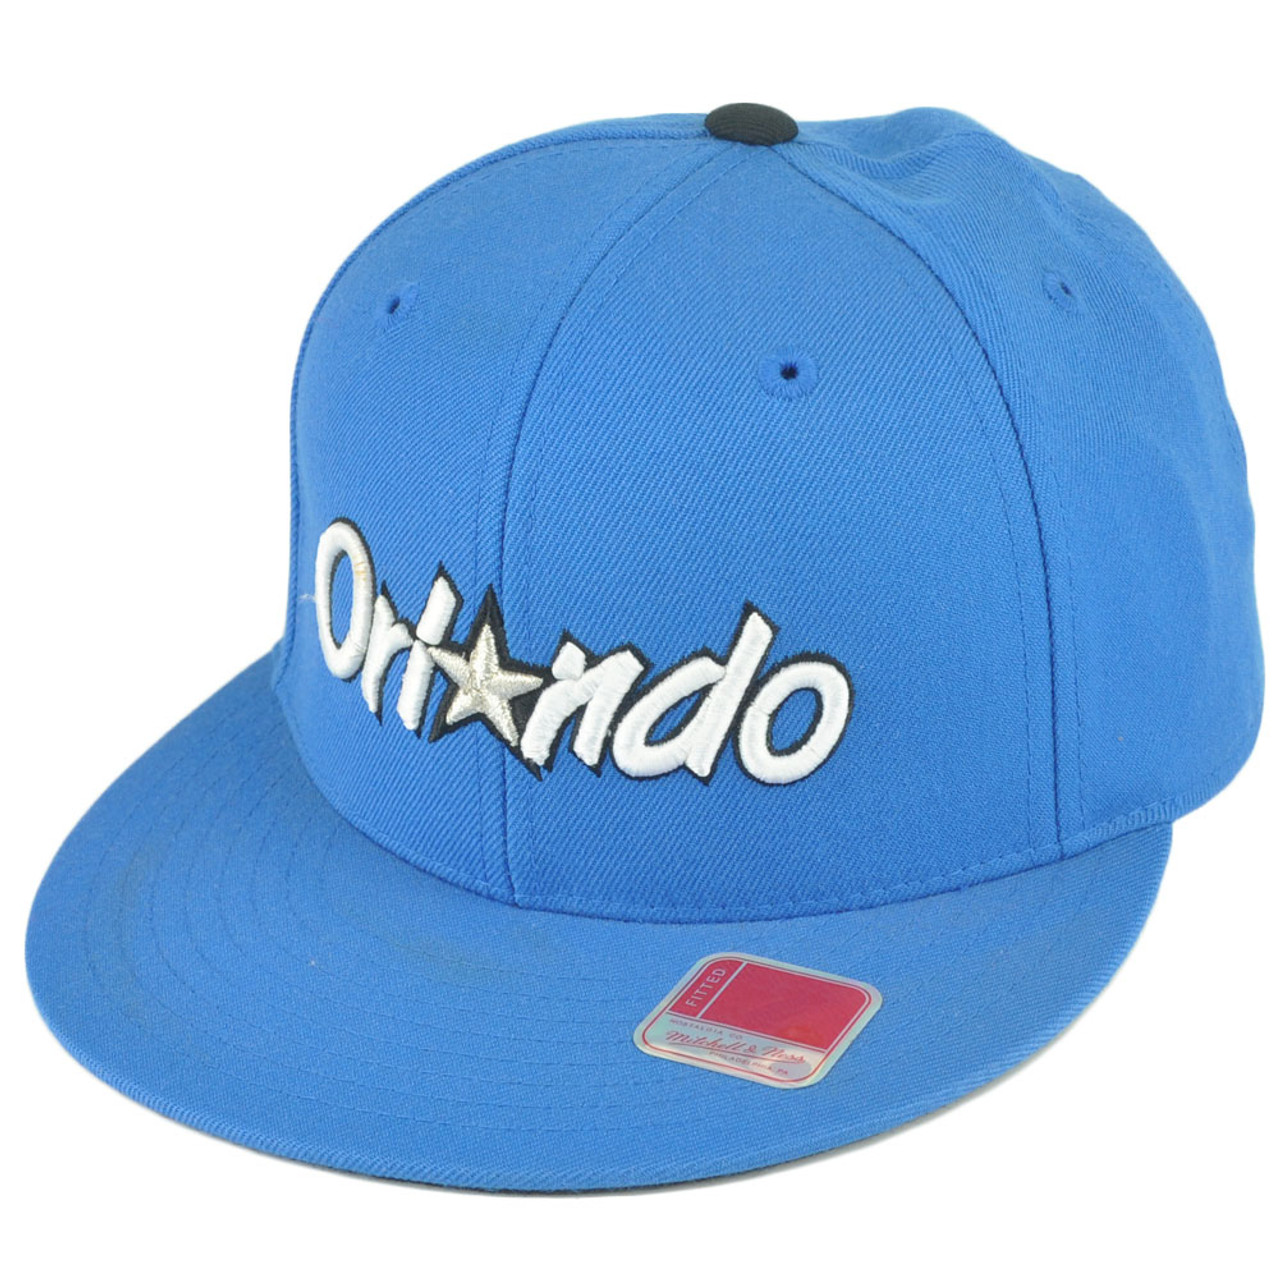 sports shoes eec2f 345d5 NBA Mitchell Ness TK40 Orlando Magic Blue Alternate Fitted Hat Cap